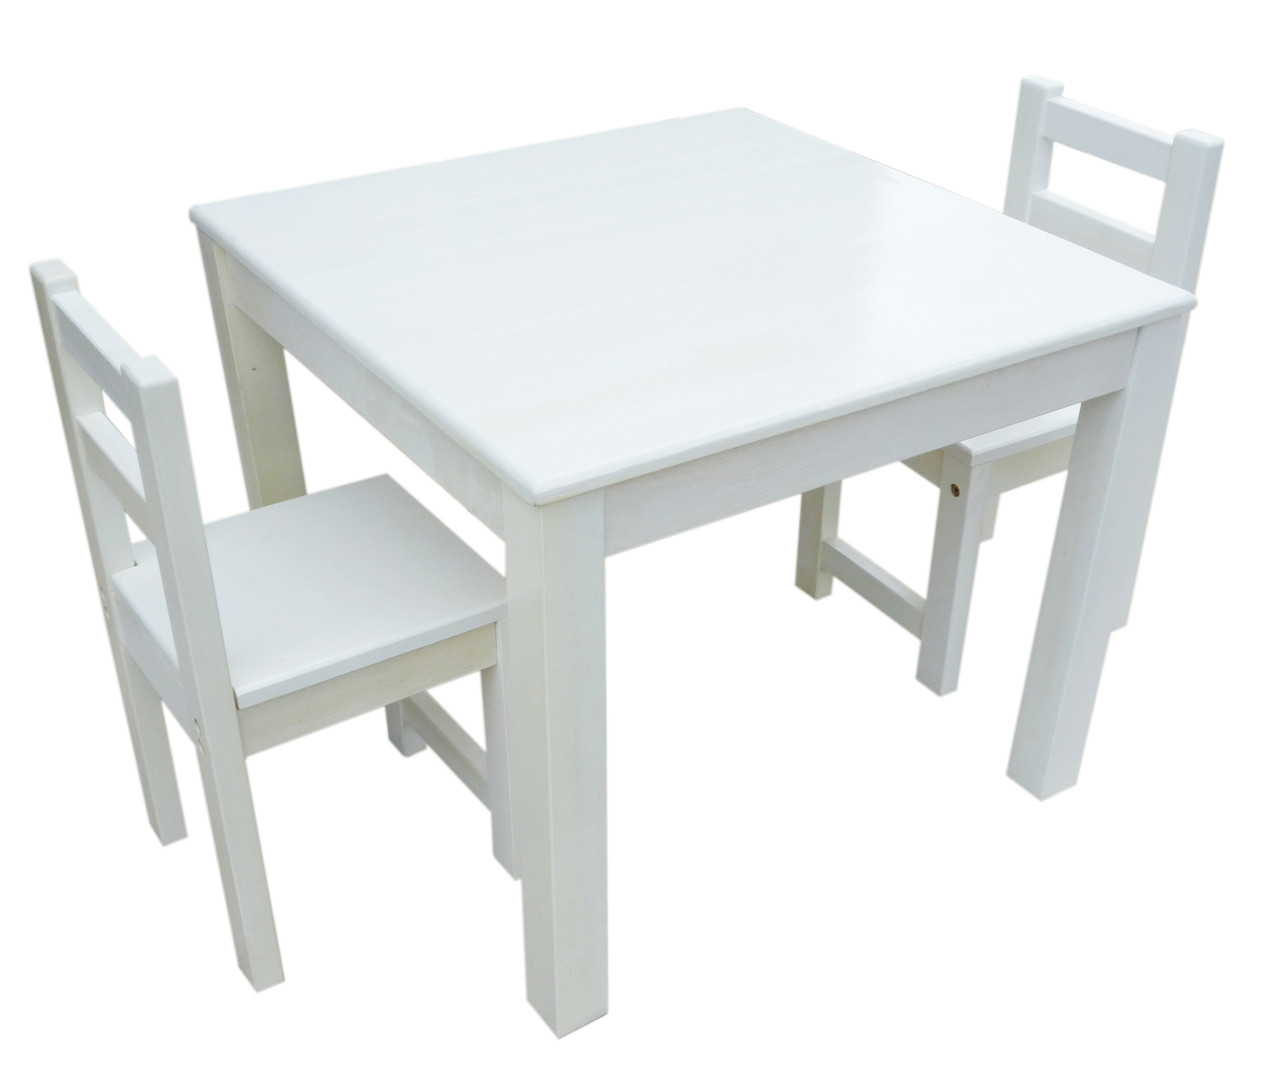 QToys Eco-Friendly White Table & Chair Set For Kids On